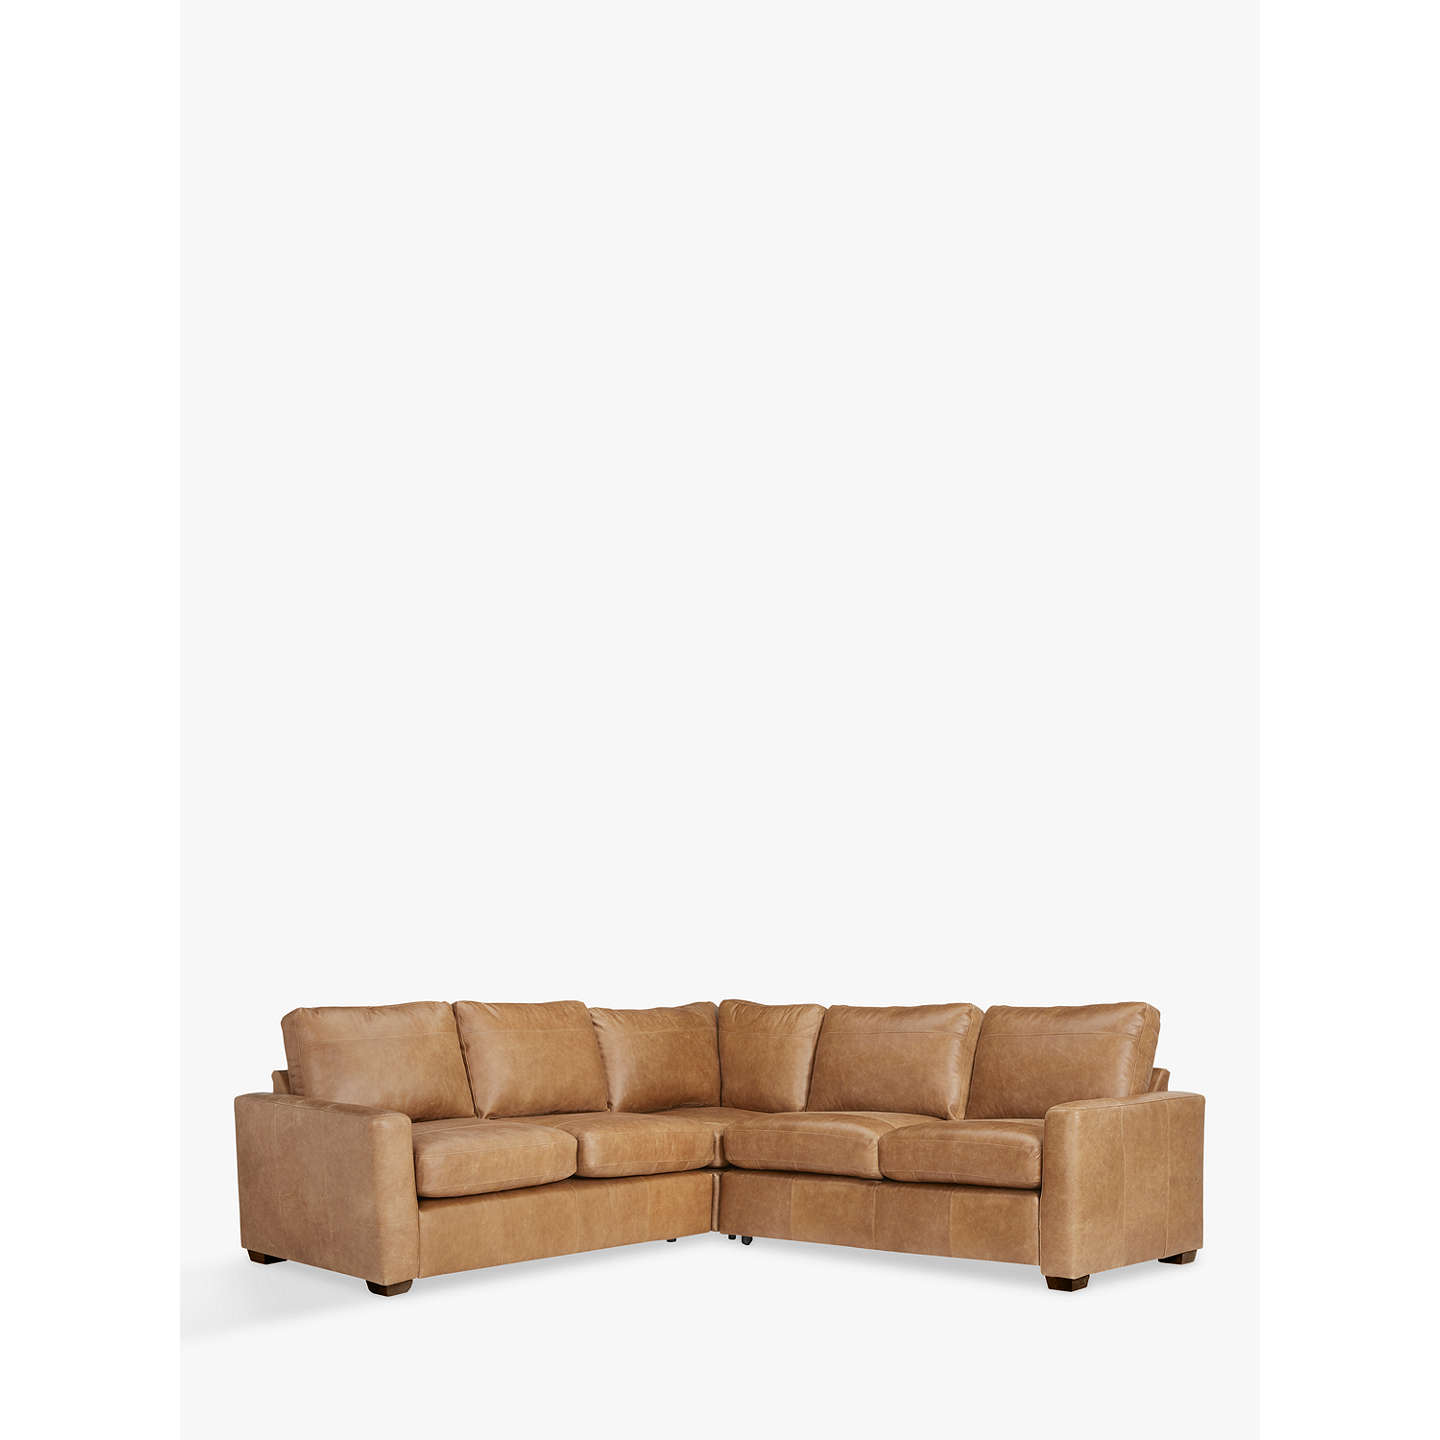 John Lewis Cooper Corner Sofa: John Lewis Leather Corner Sofa Bed